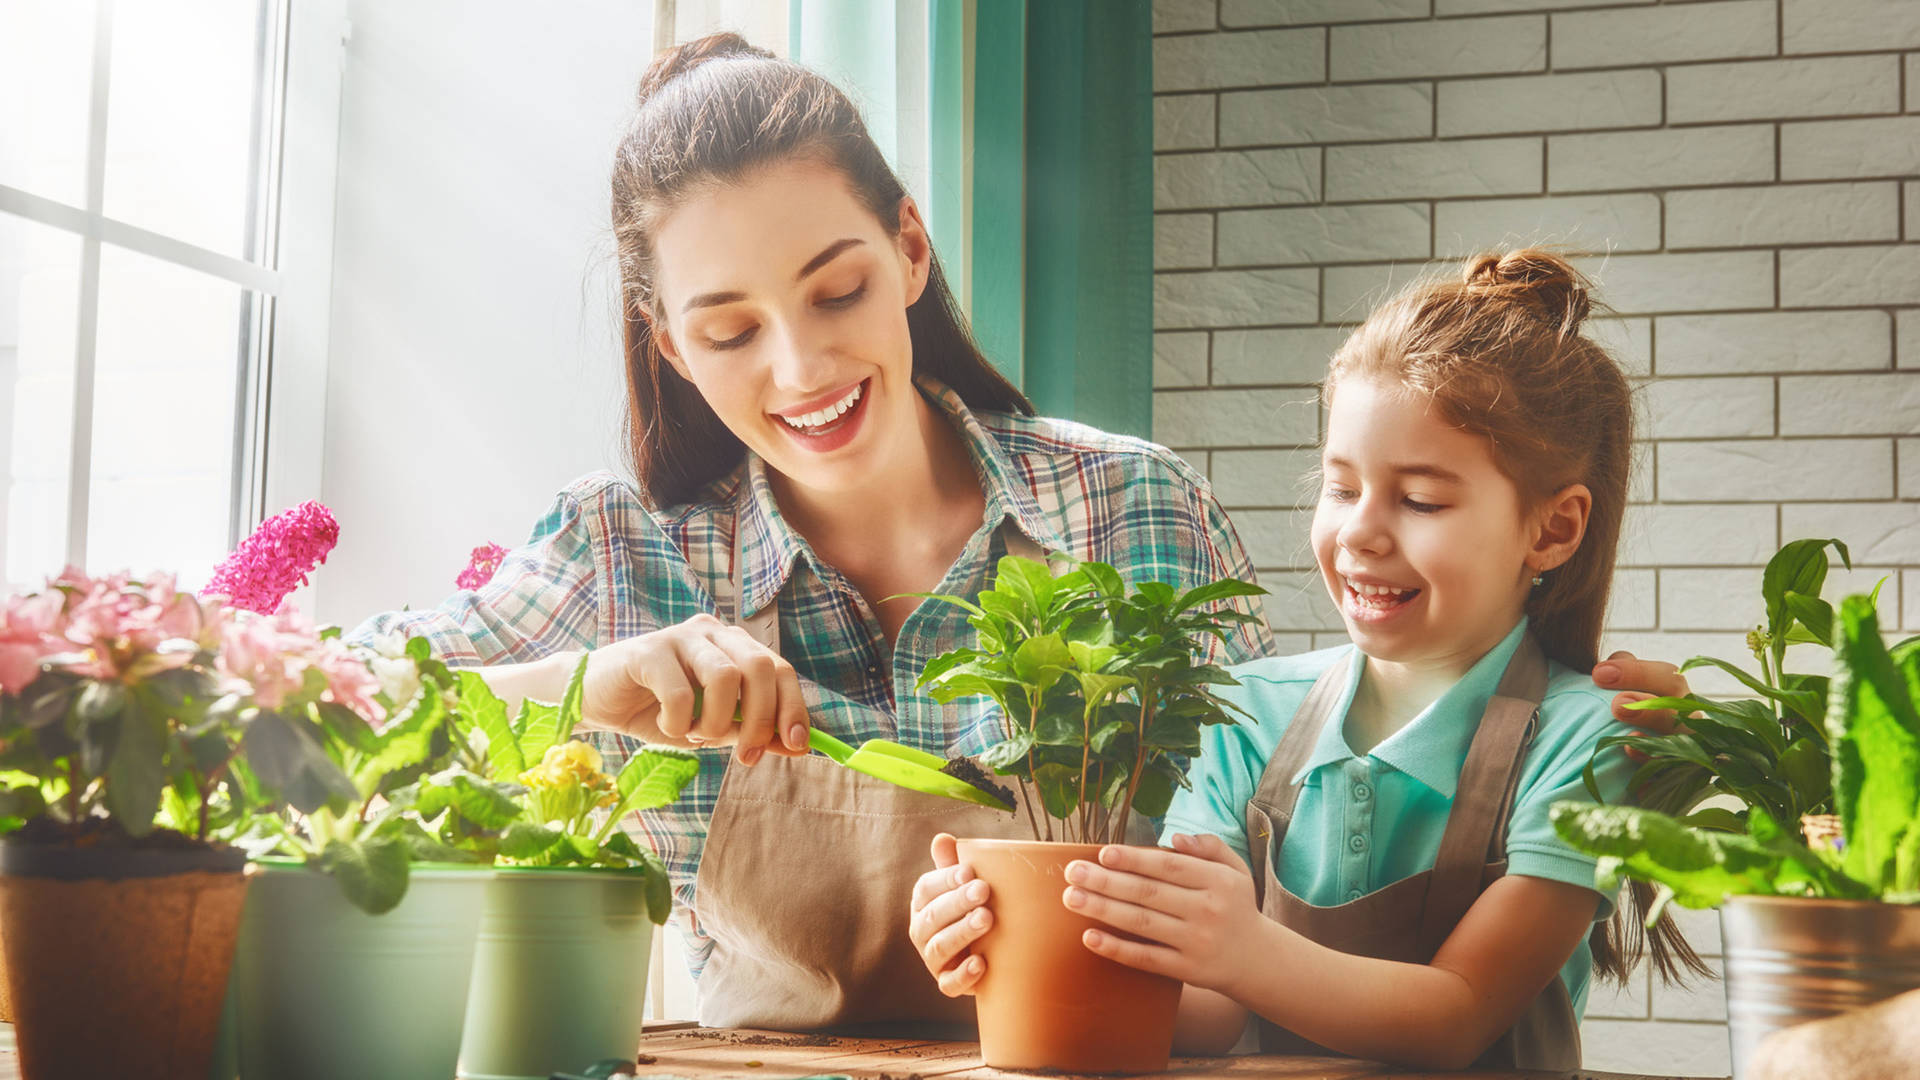 A mother and daughter gardening at home together